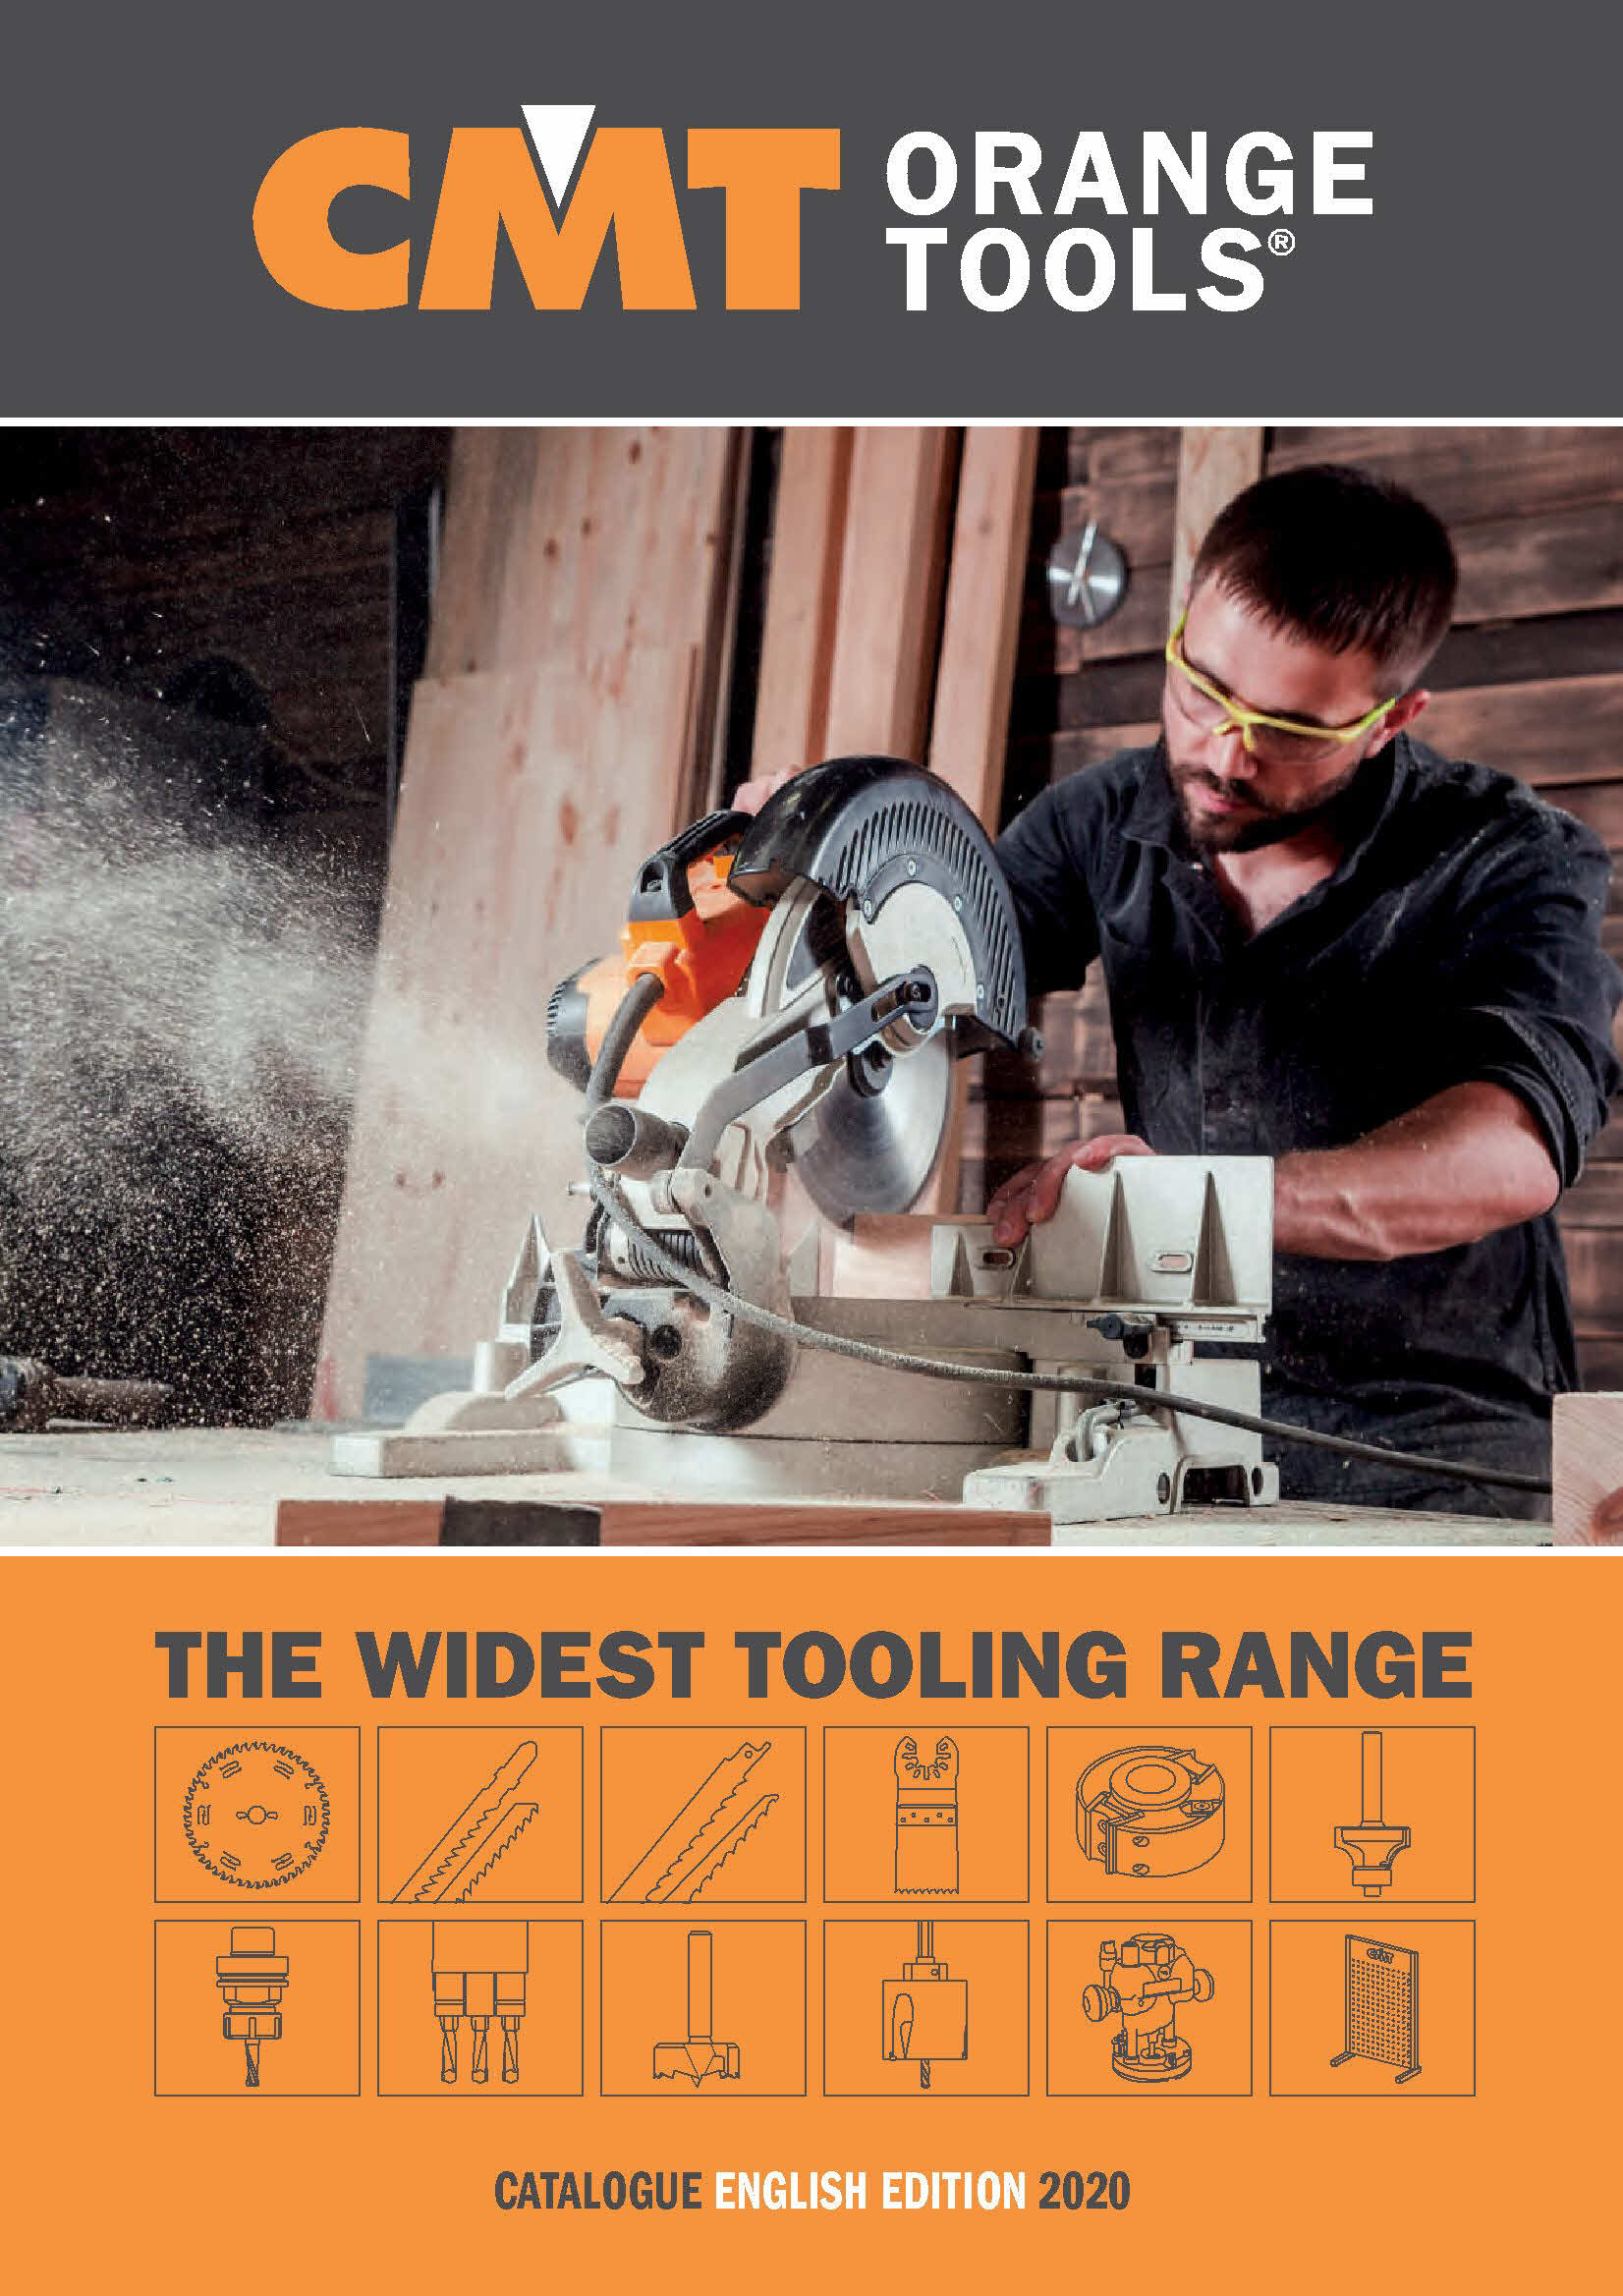 THE WIDEST TOOLING RANGE